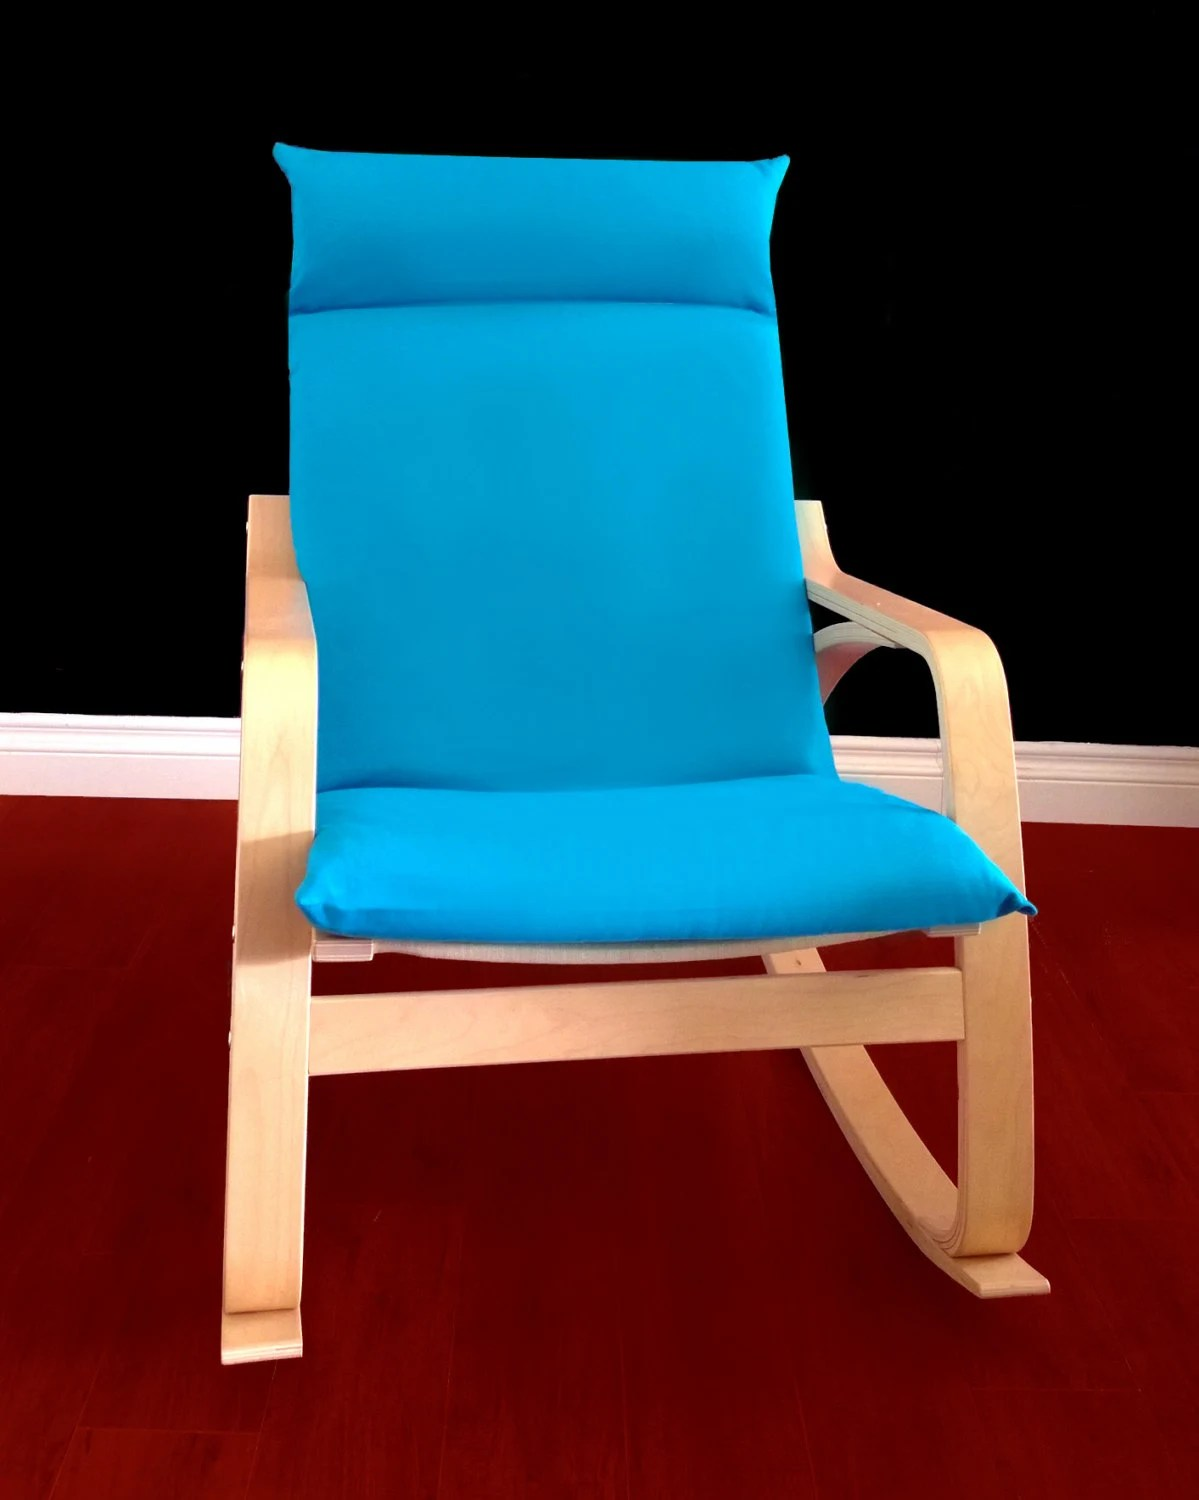 ikea poang chair cover reupholstering a turquoise solid blue seat